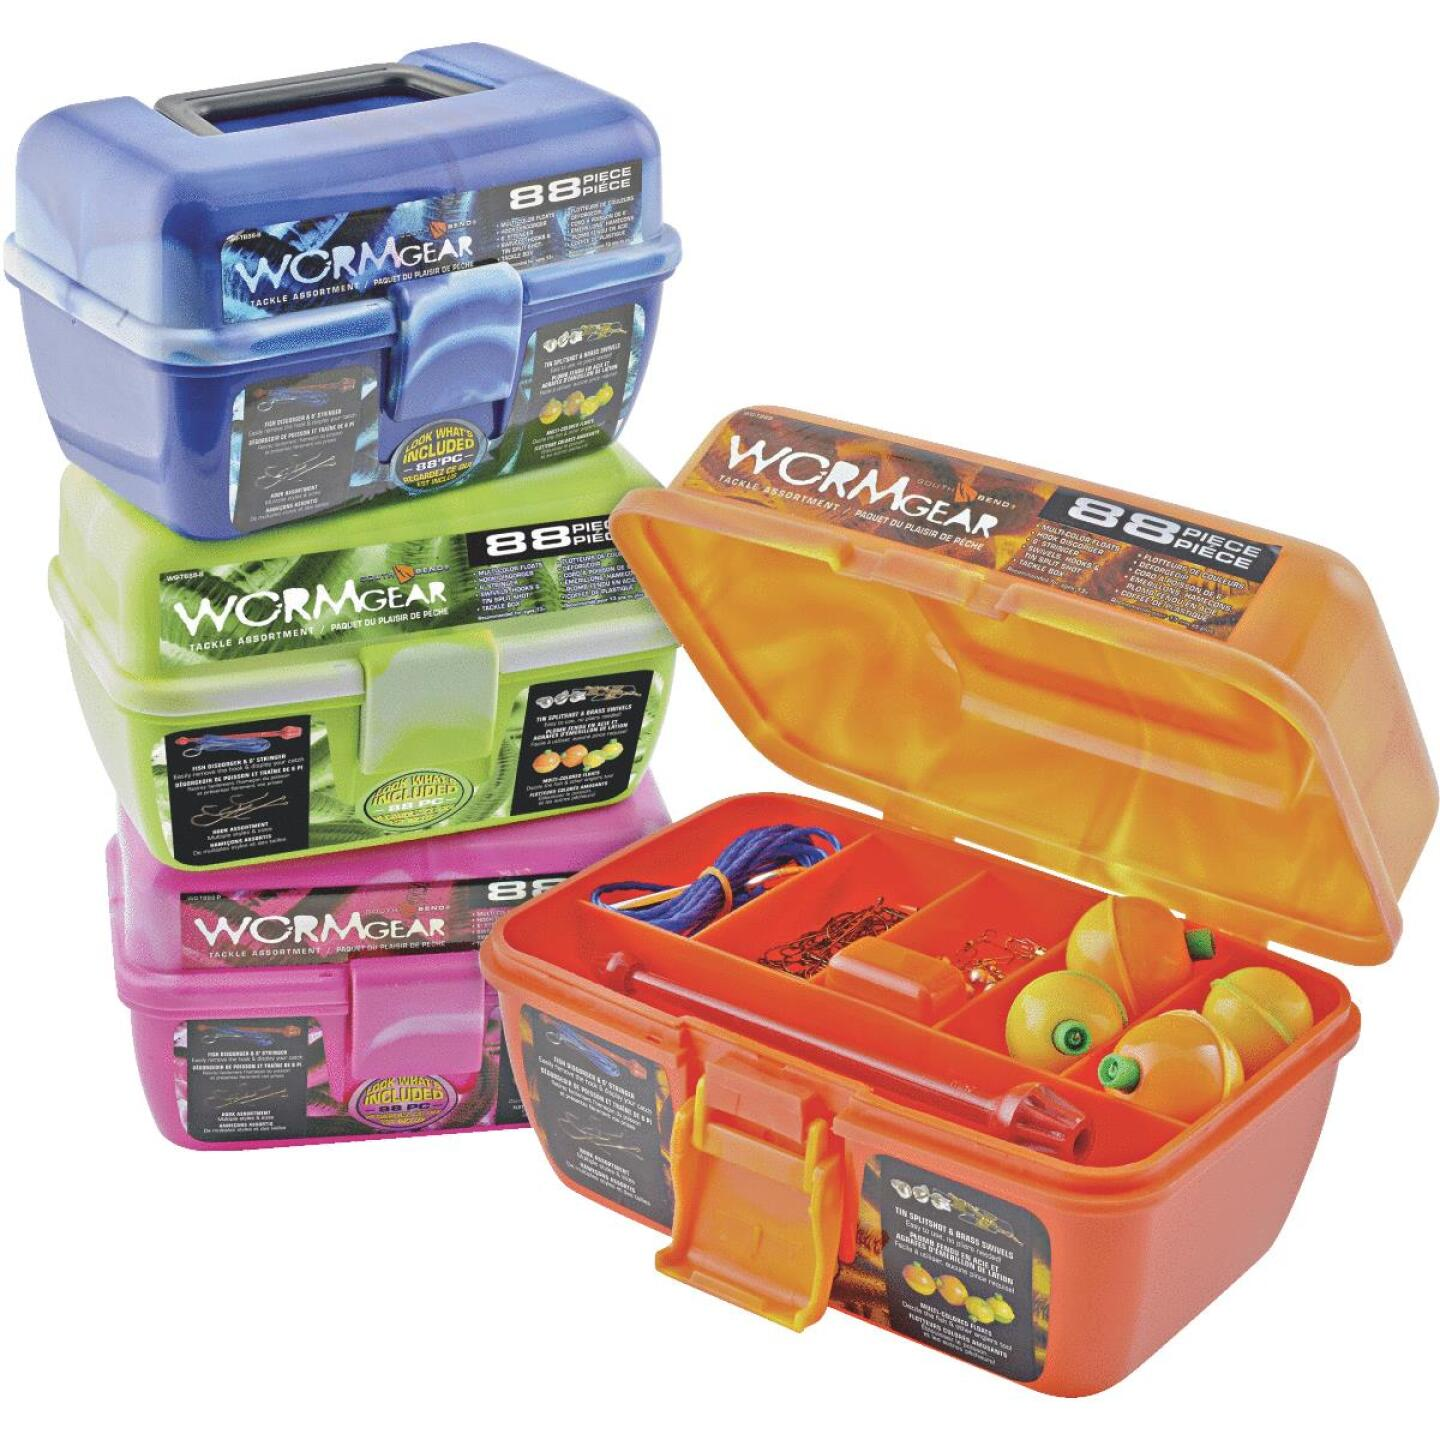 Worm Gear 7-Compartment Tackle Box with Tackle Image 1